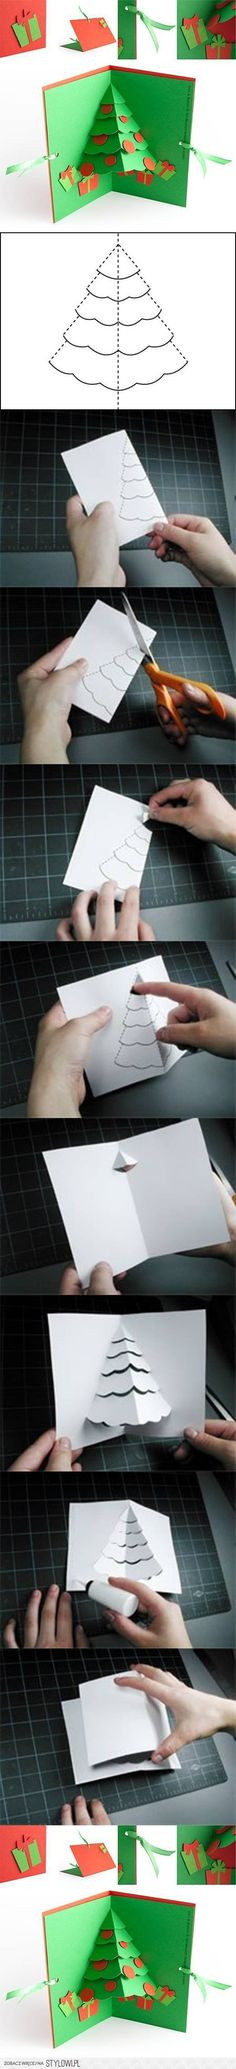 DIY Christmas Tree Pop Up Card DIY Projects | UsefulDIY… na Stylowi.pl